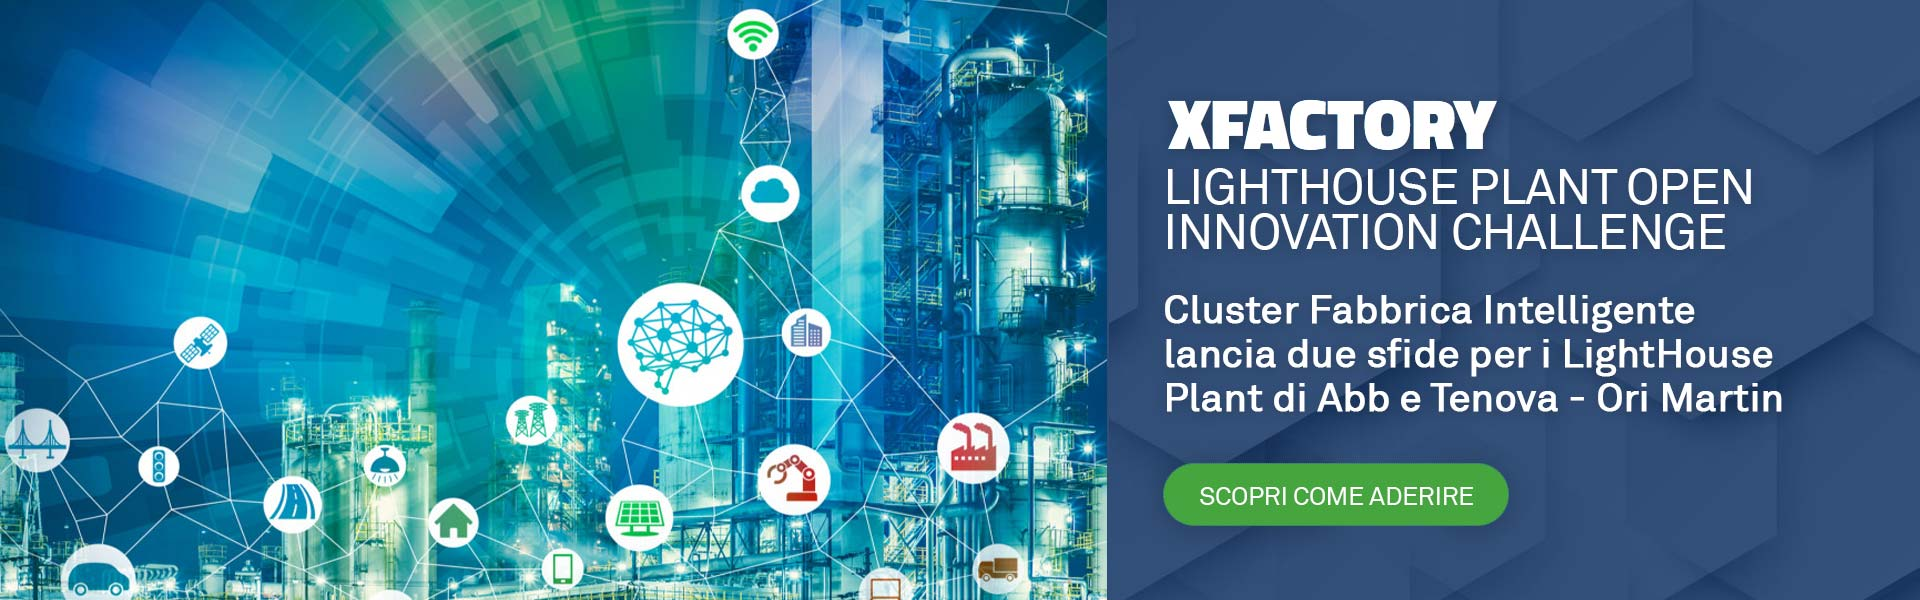 XFactory LightHouse Plant Open Innovation Challenge